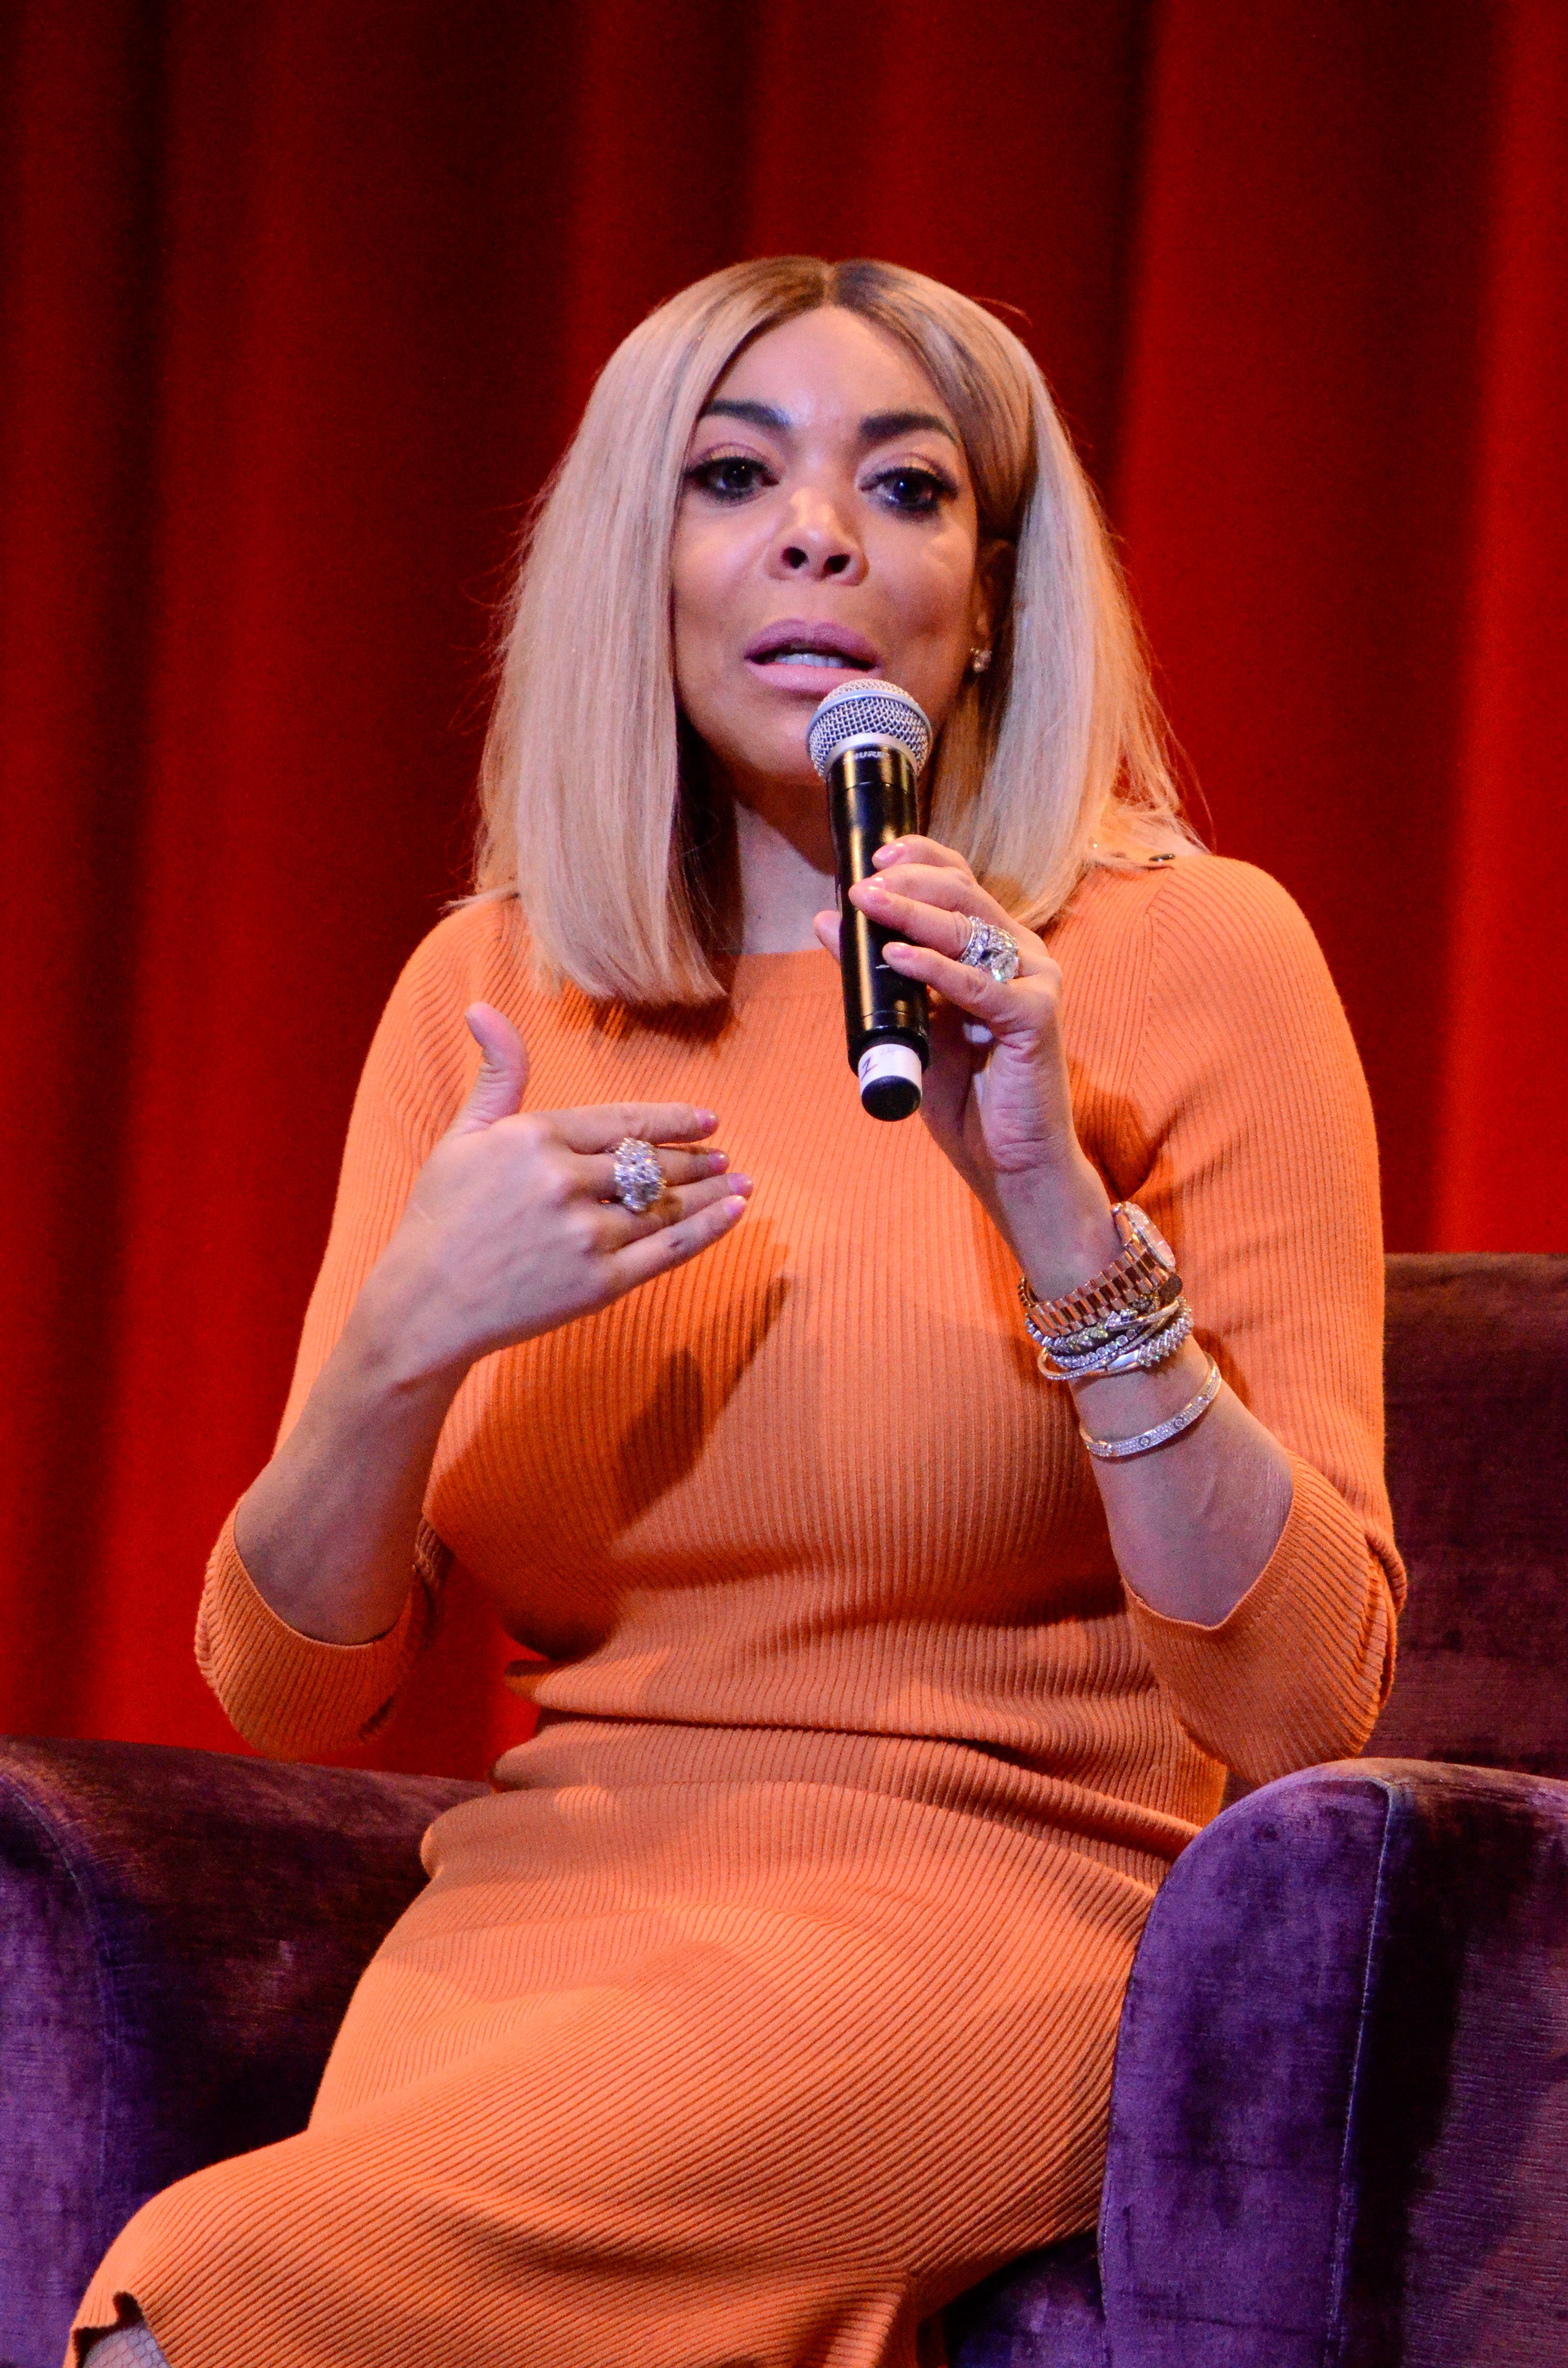 NEW YORK, NY - SEPTEMBER 29: Wendy Williams attends the WBLS/WLIB annual Circle of Sisters Expo at Jacob Javits Convention Center on September 29, 2018 in New York City. Credit: Raymond Hagans/MediaPunch /IPX